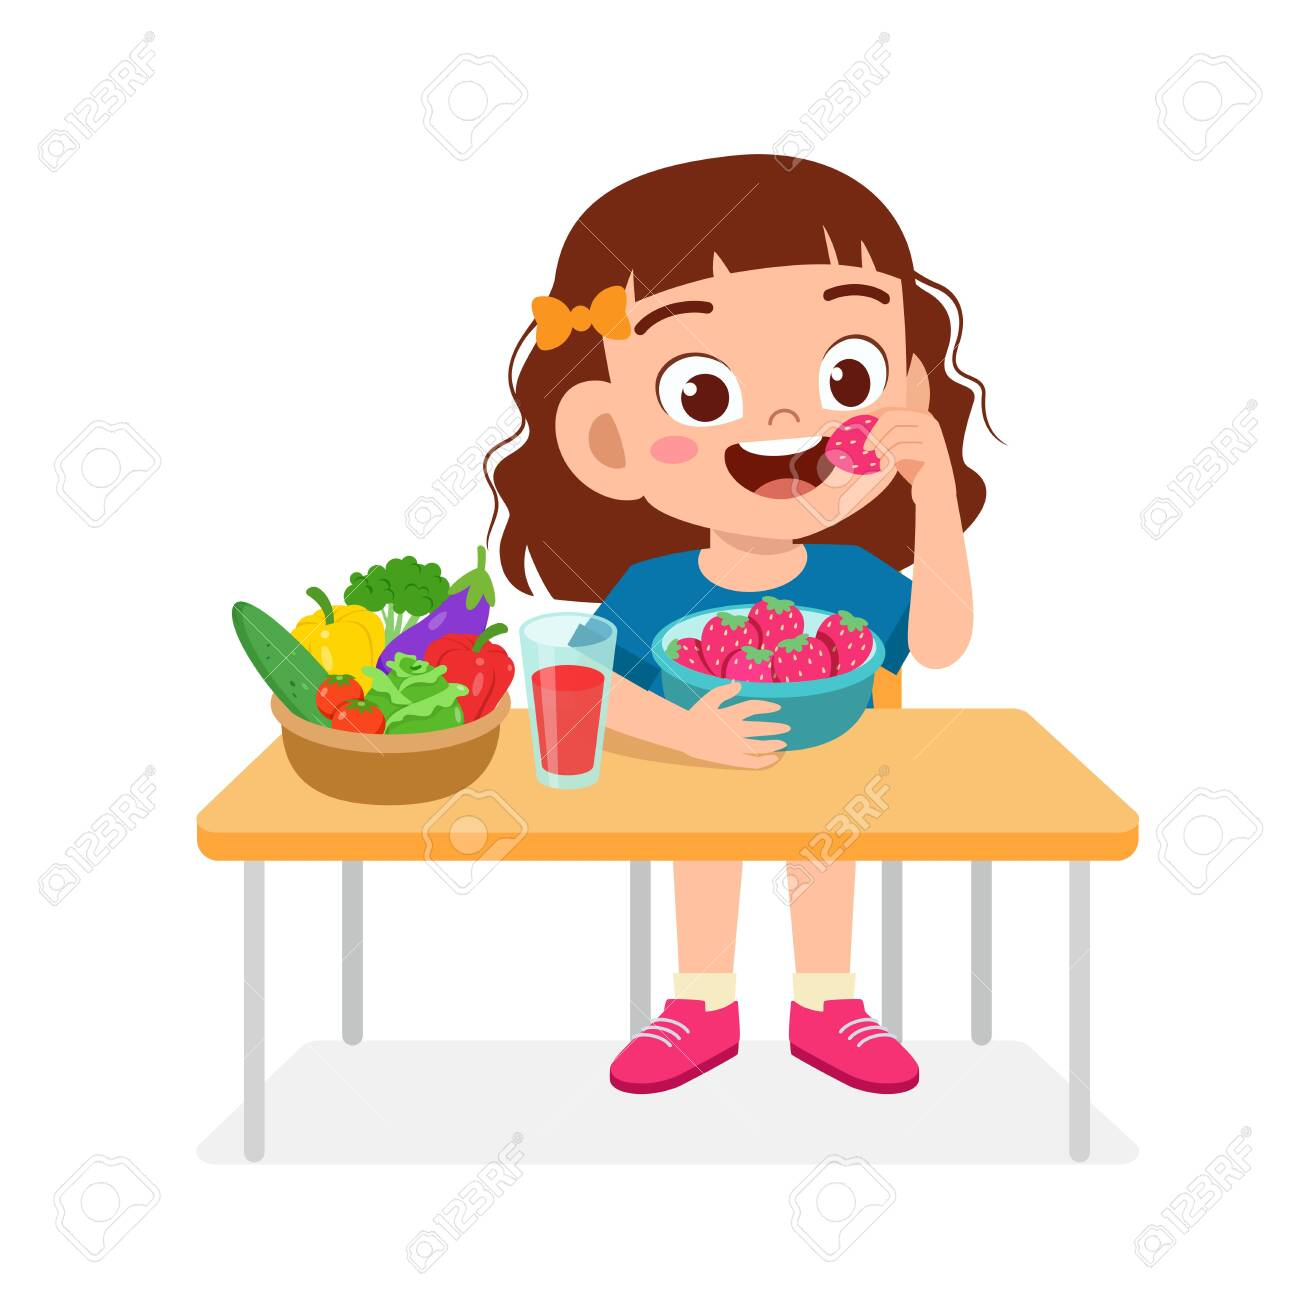 Happy Cute Kid Girl Eat Healthy Food Royalty Free Cliparts Vectors And Stock Illustration Image 138518333